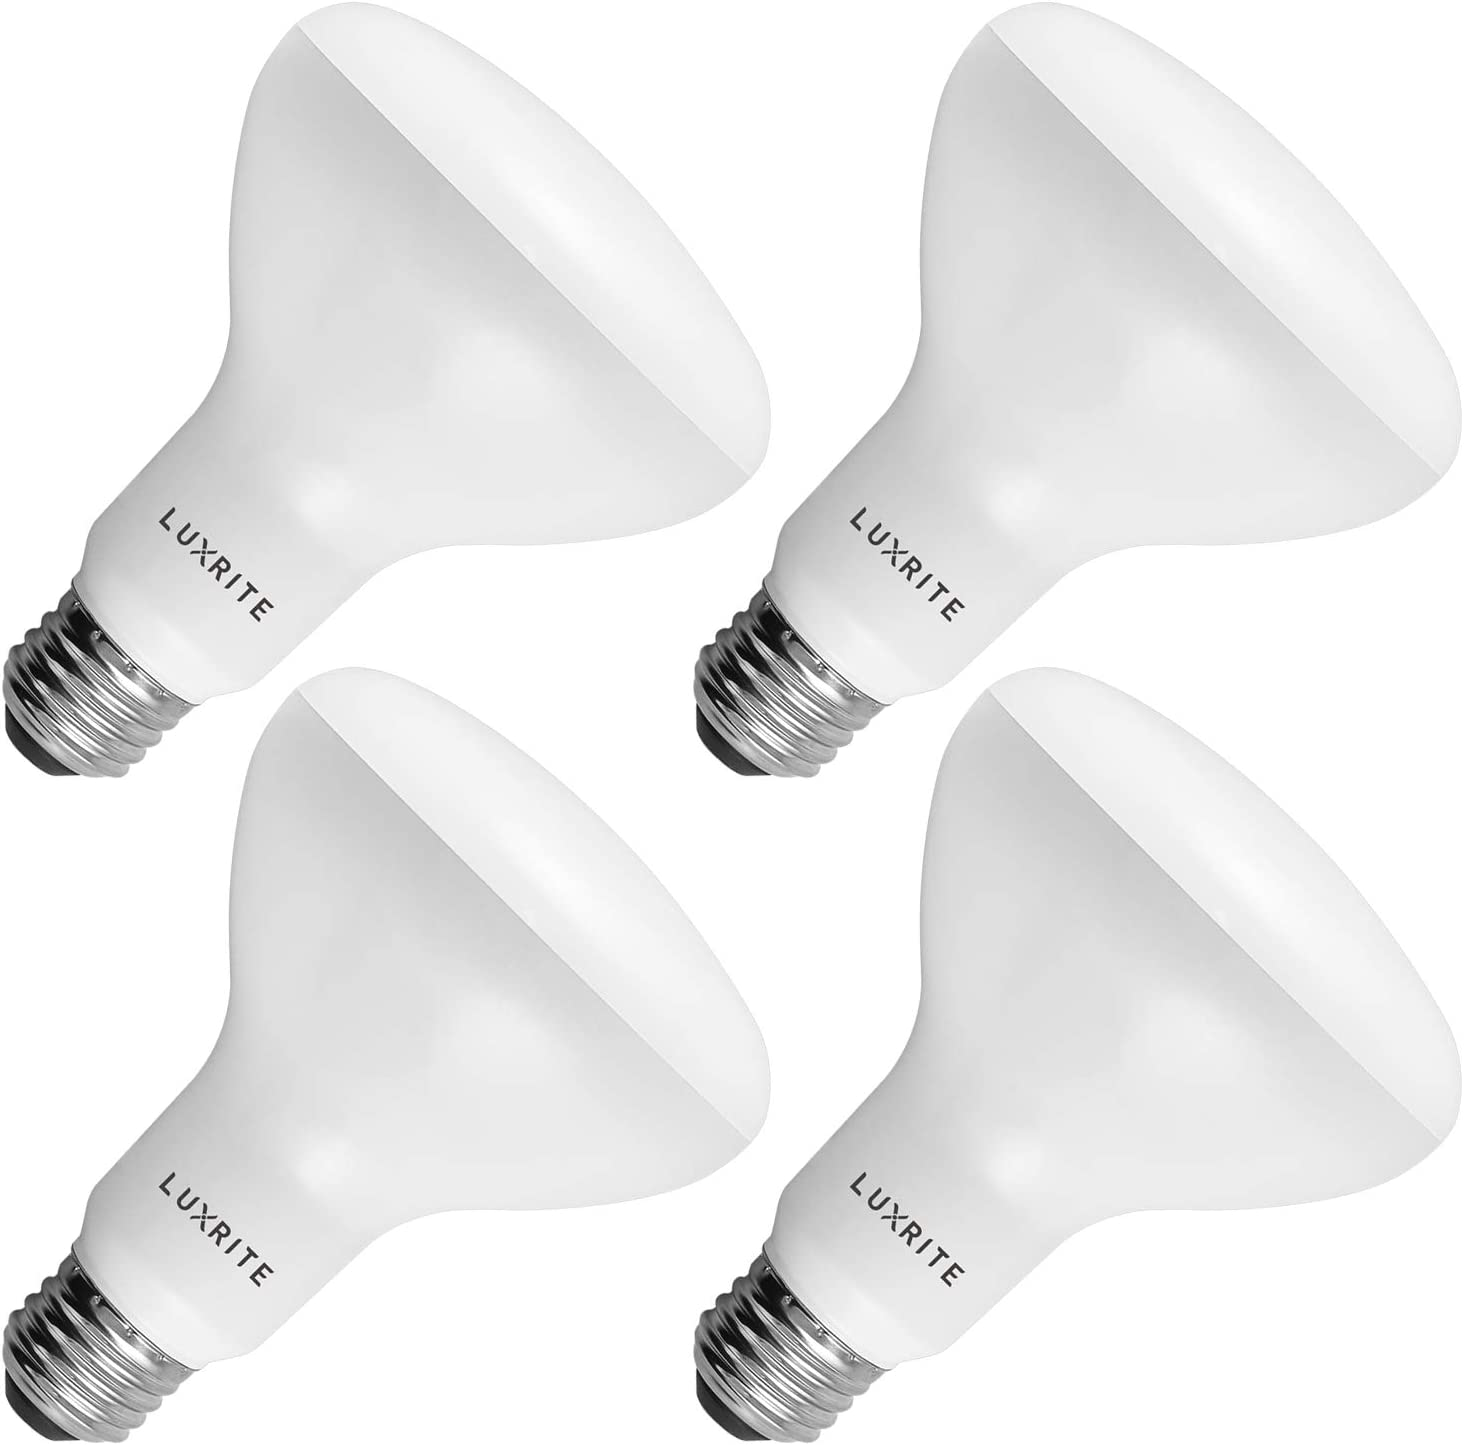 Amazon Com 4 Pack Br30 Led Bulb Luxrite 65w Equivalent 4000k Cool White Dimmable 650 Lumens Led Flood Light Bulbs 9w E26 Medium Base Damp Rated Indoor Outdoor Living Room Kitchen Recessed Lighting Home